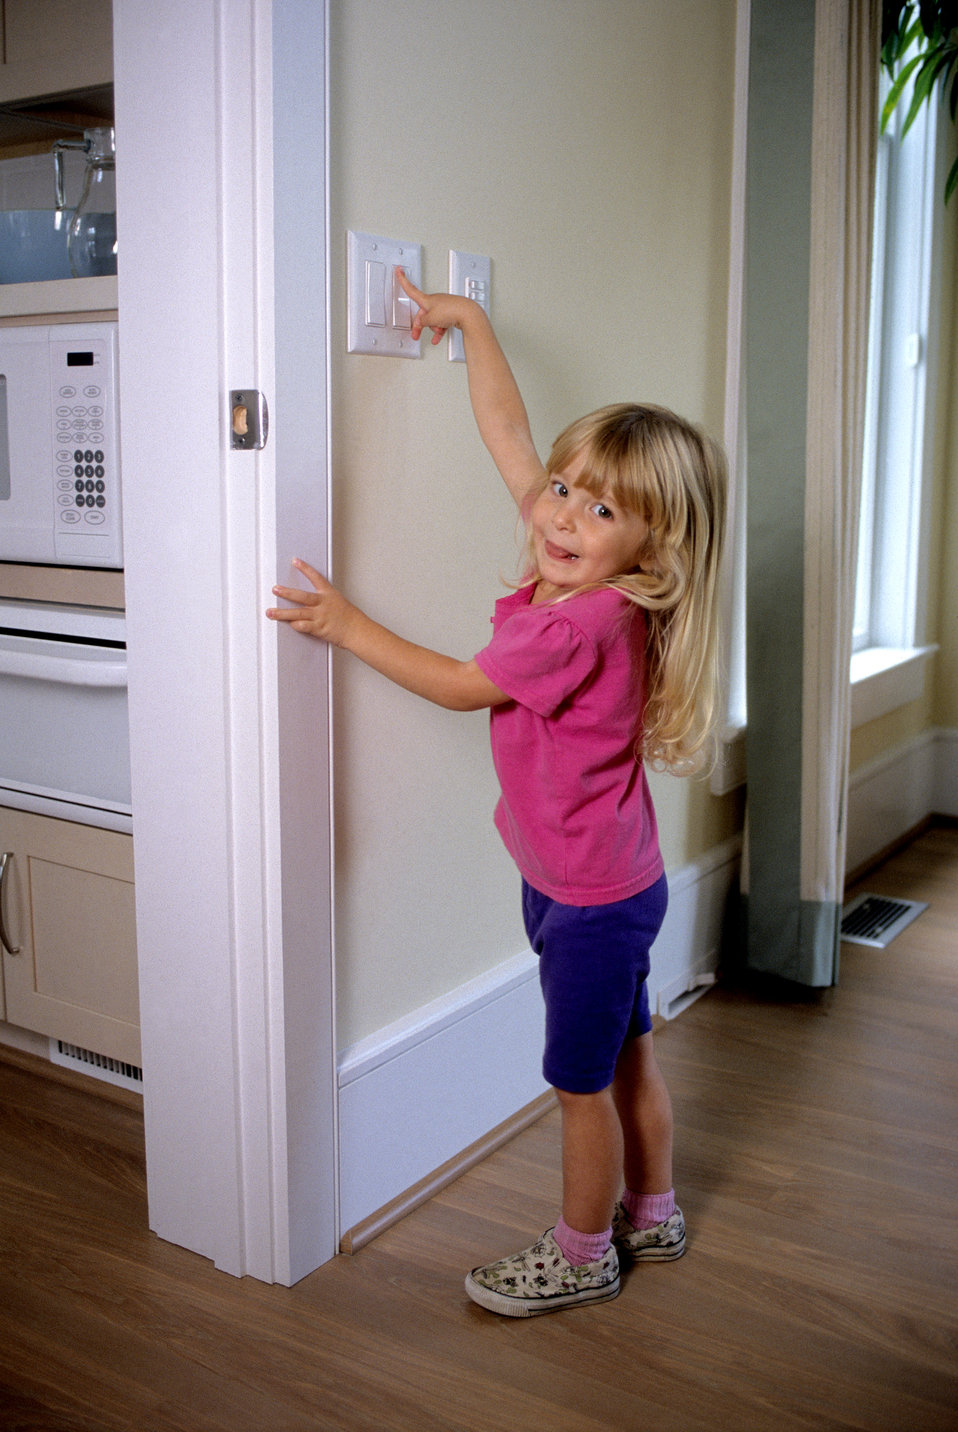 This 2000 image revealed that light switches that were lowered so that they were more reachable, might also be within reach of younger child